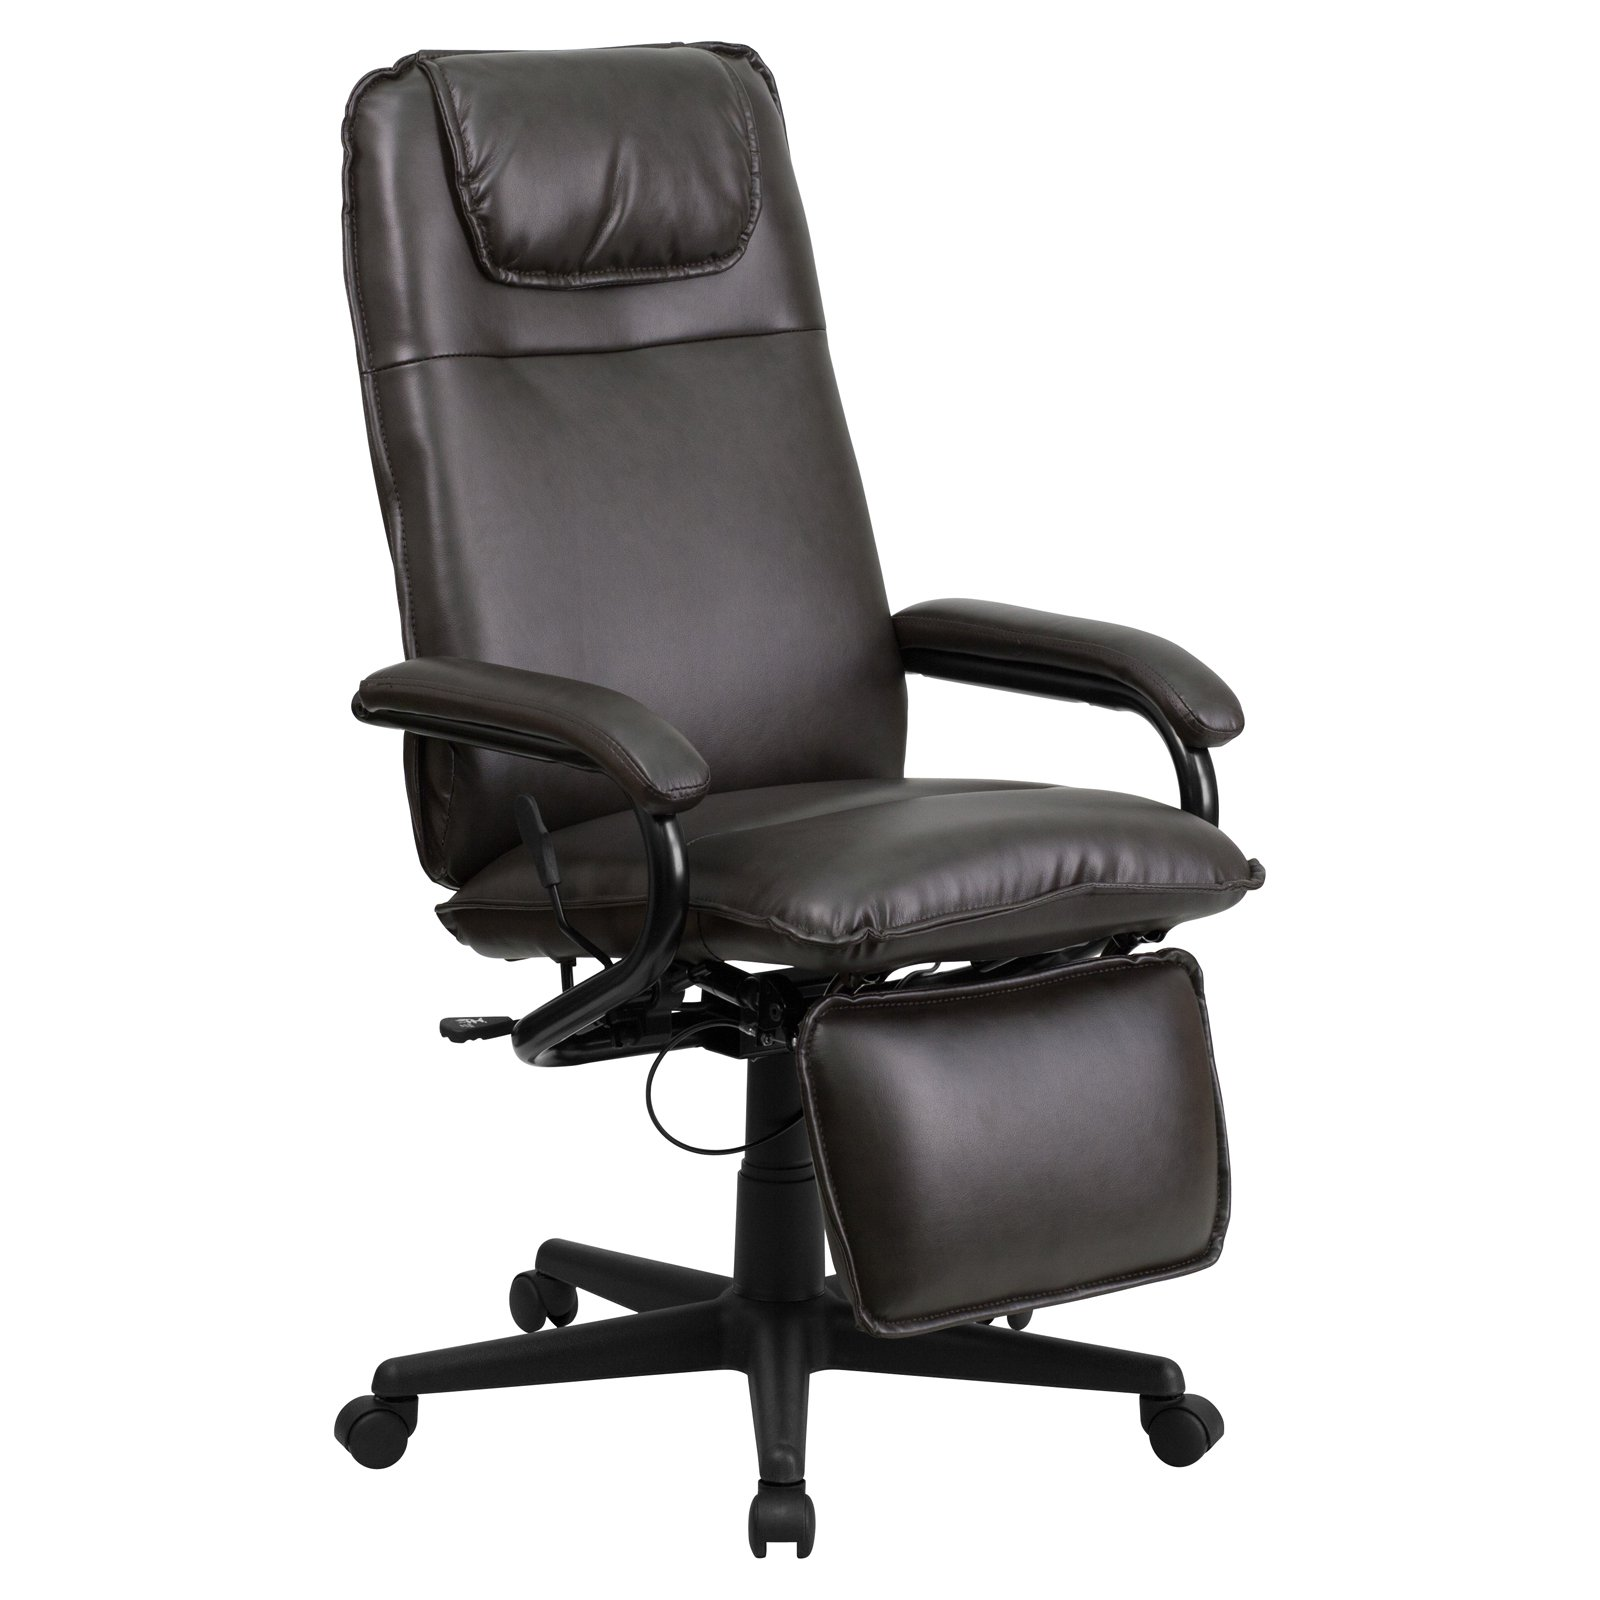 Flash Furniture High Back Leather Executive Reclining Swivel Office Chair - Walmart.com  sc 1 st  Walmart : batman recliner - islam-shia.org